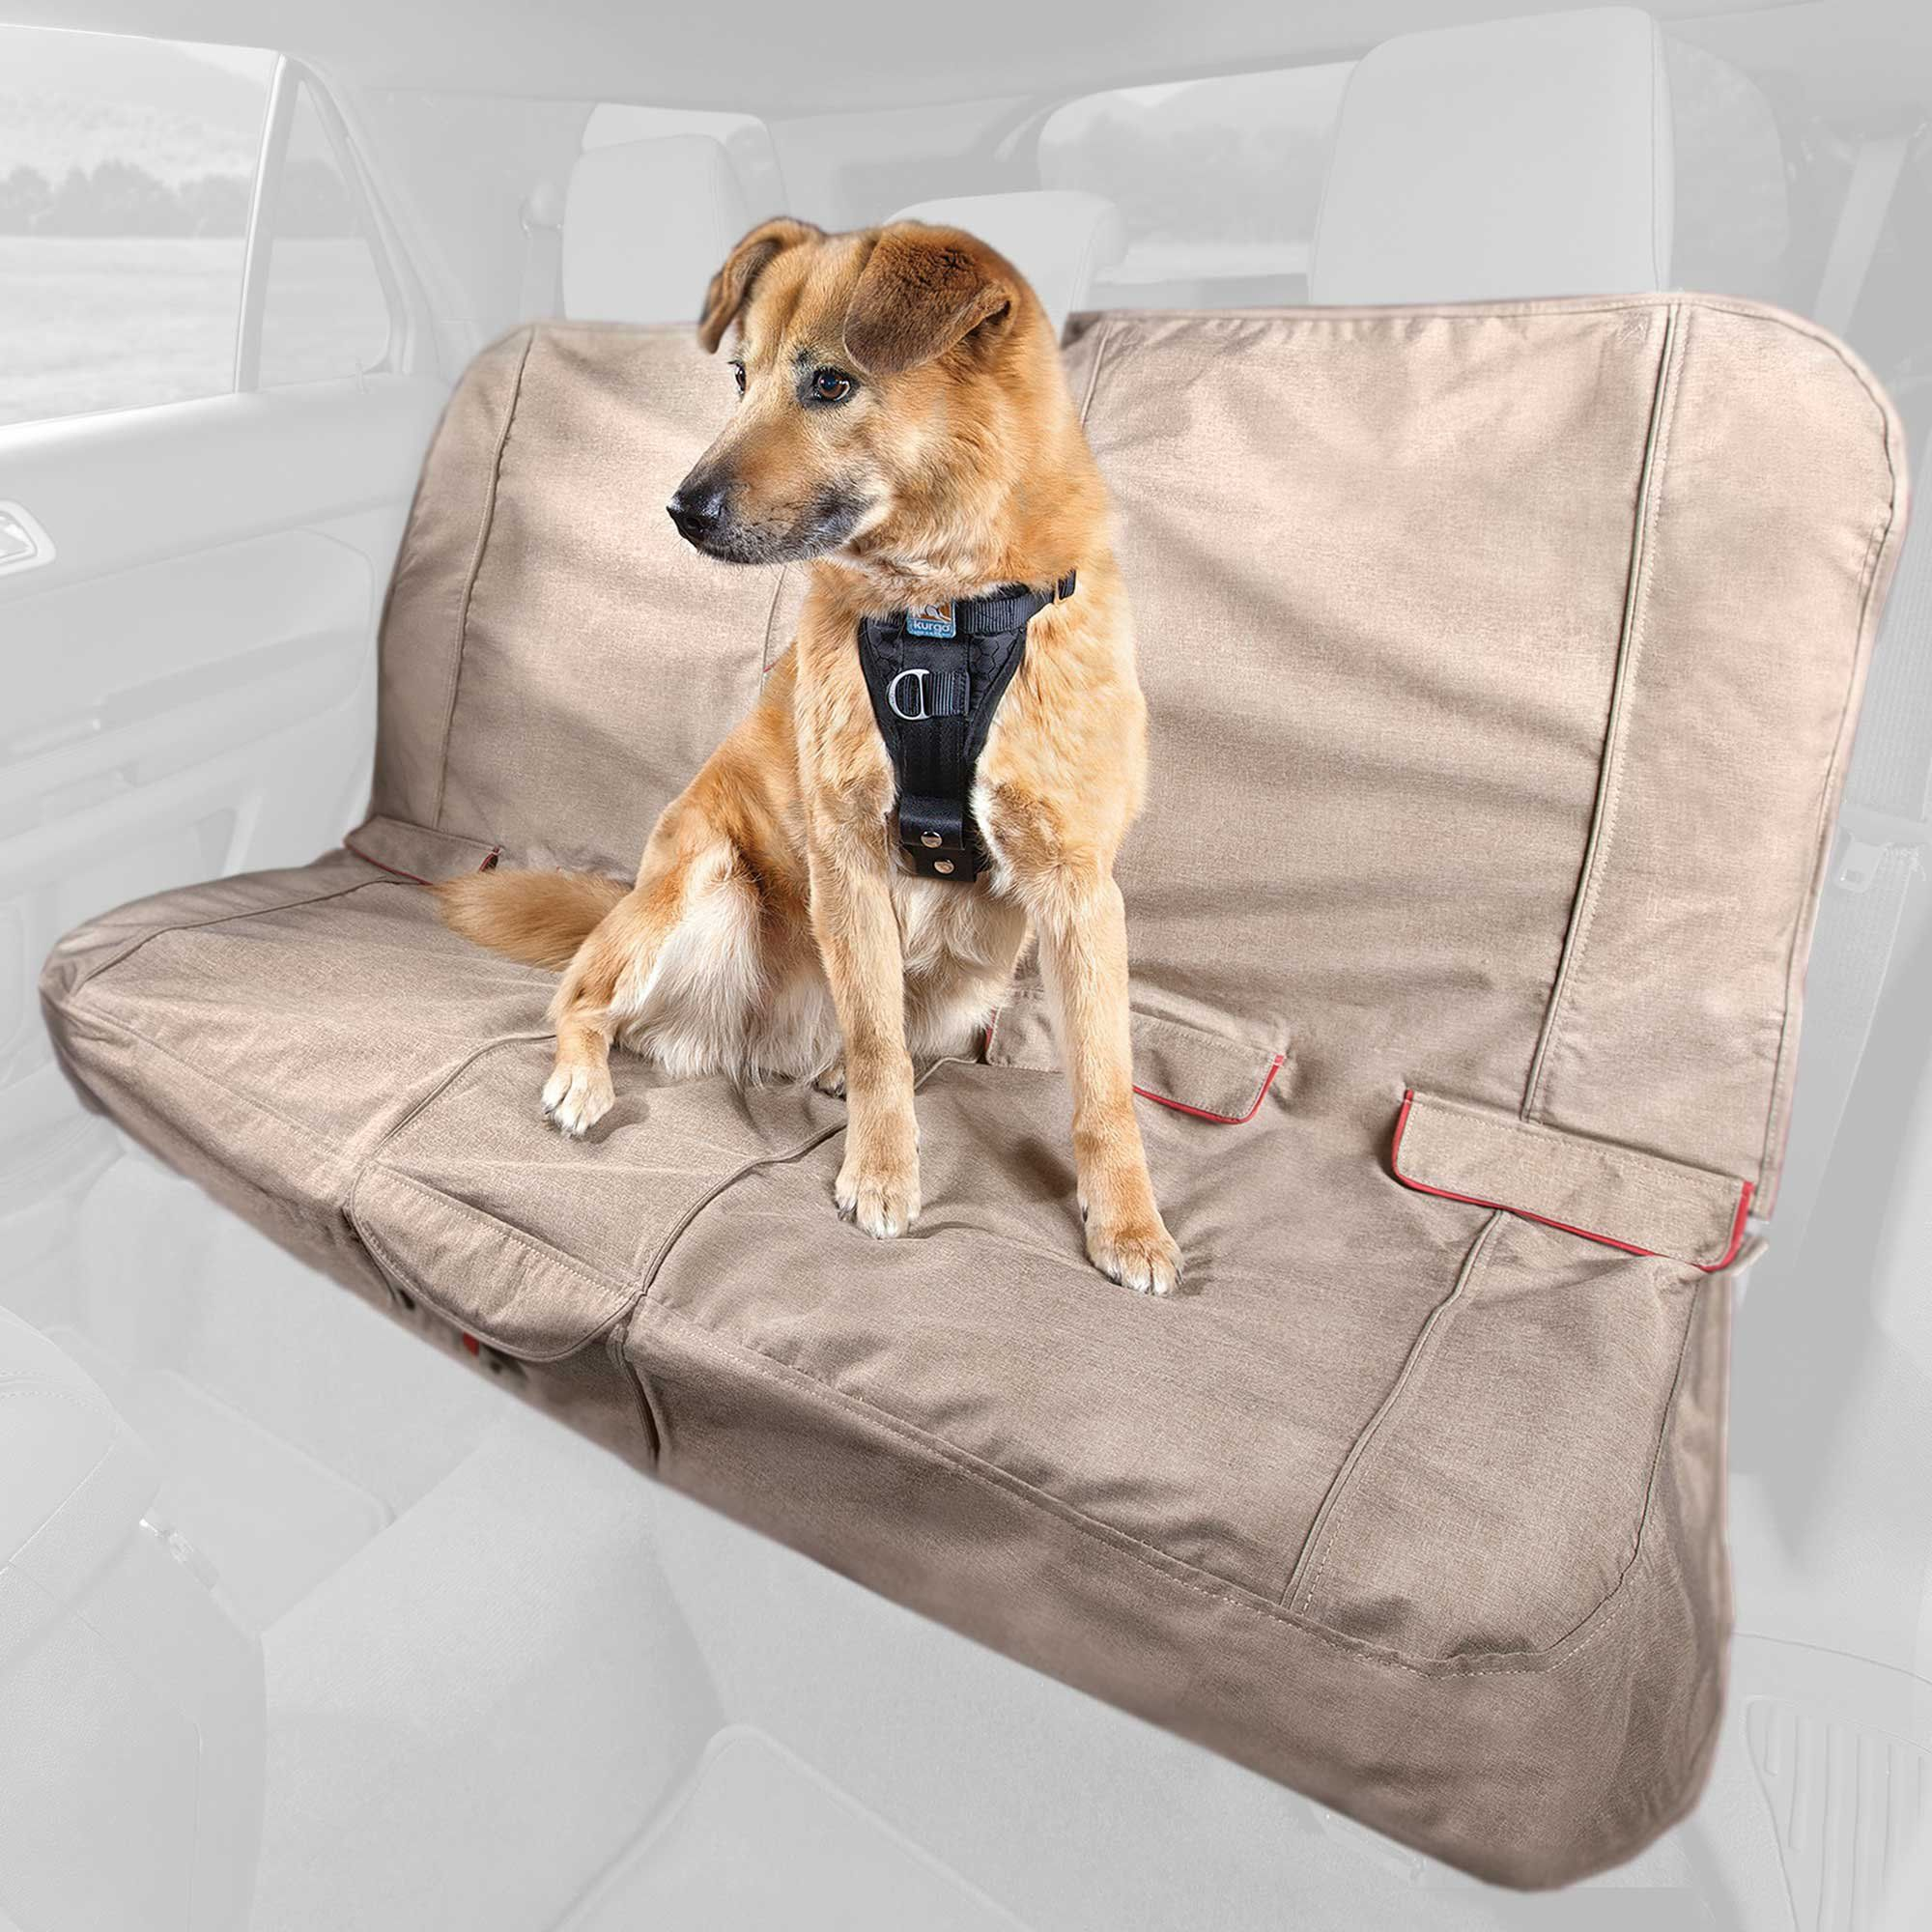 Astonishing Kurgo Heather Bench Tan Dog Car Seat Cover Products In Unemploymentrelief Wooden Chair Designs For Living Room Unemploymentrelieforg